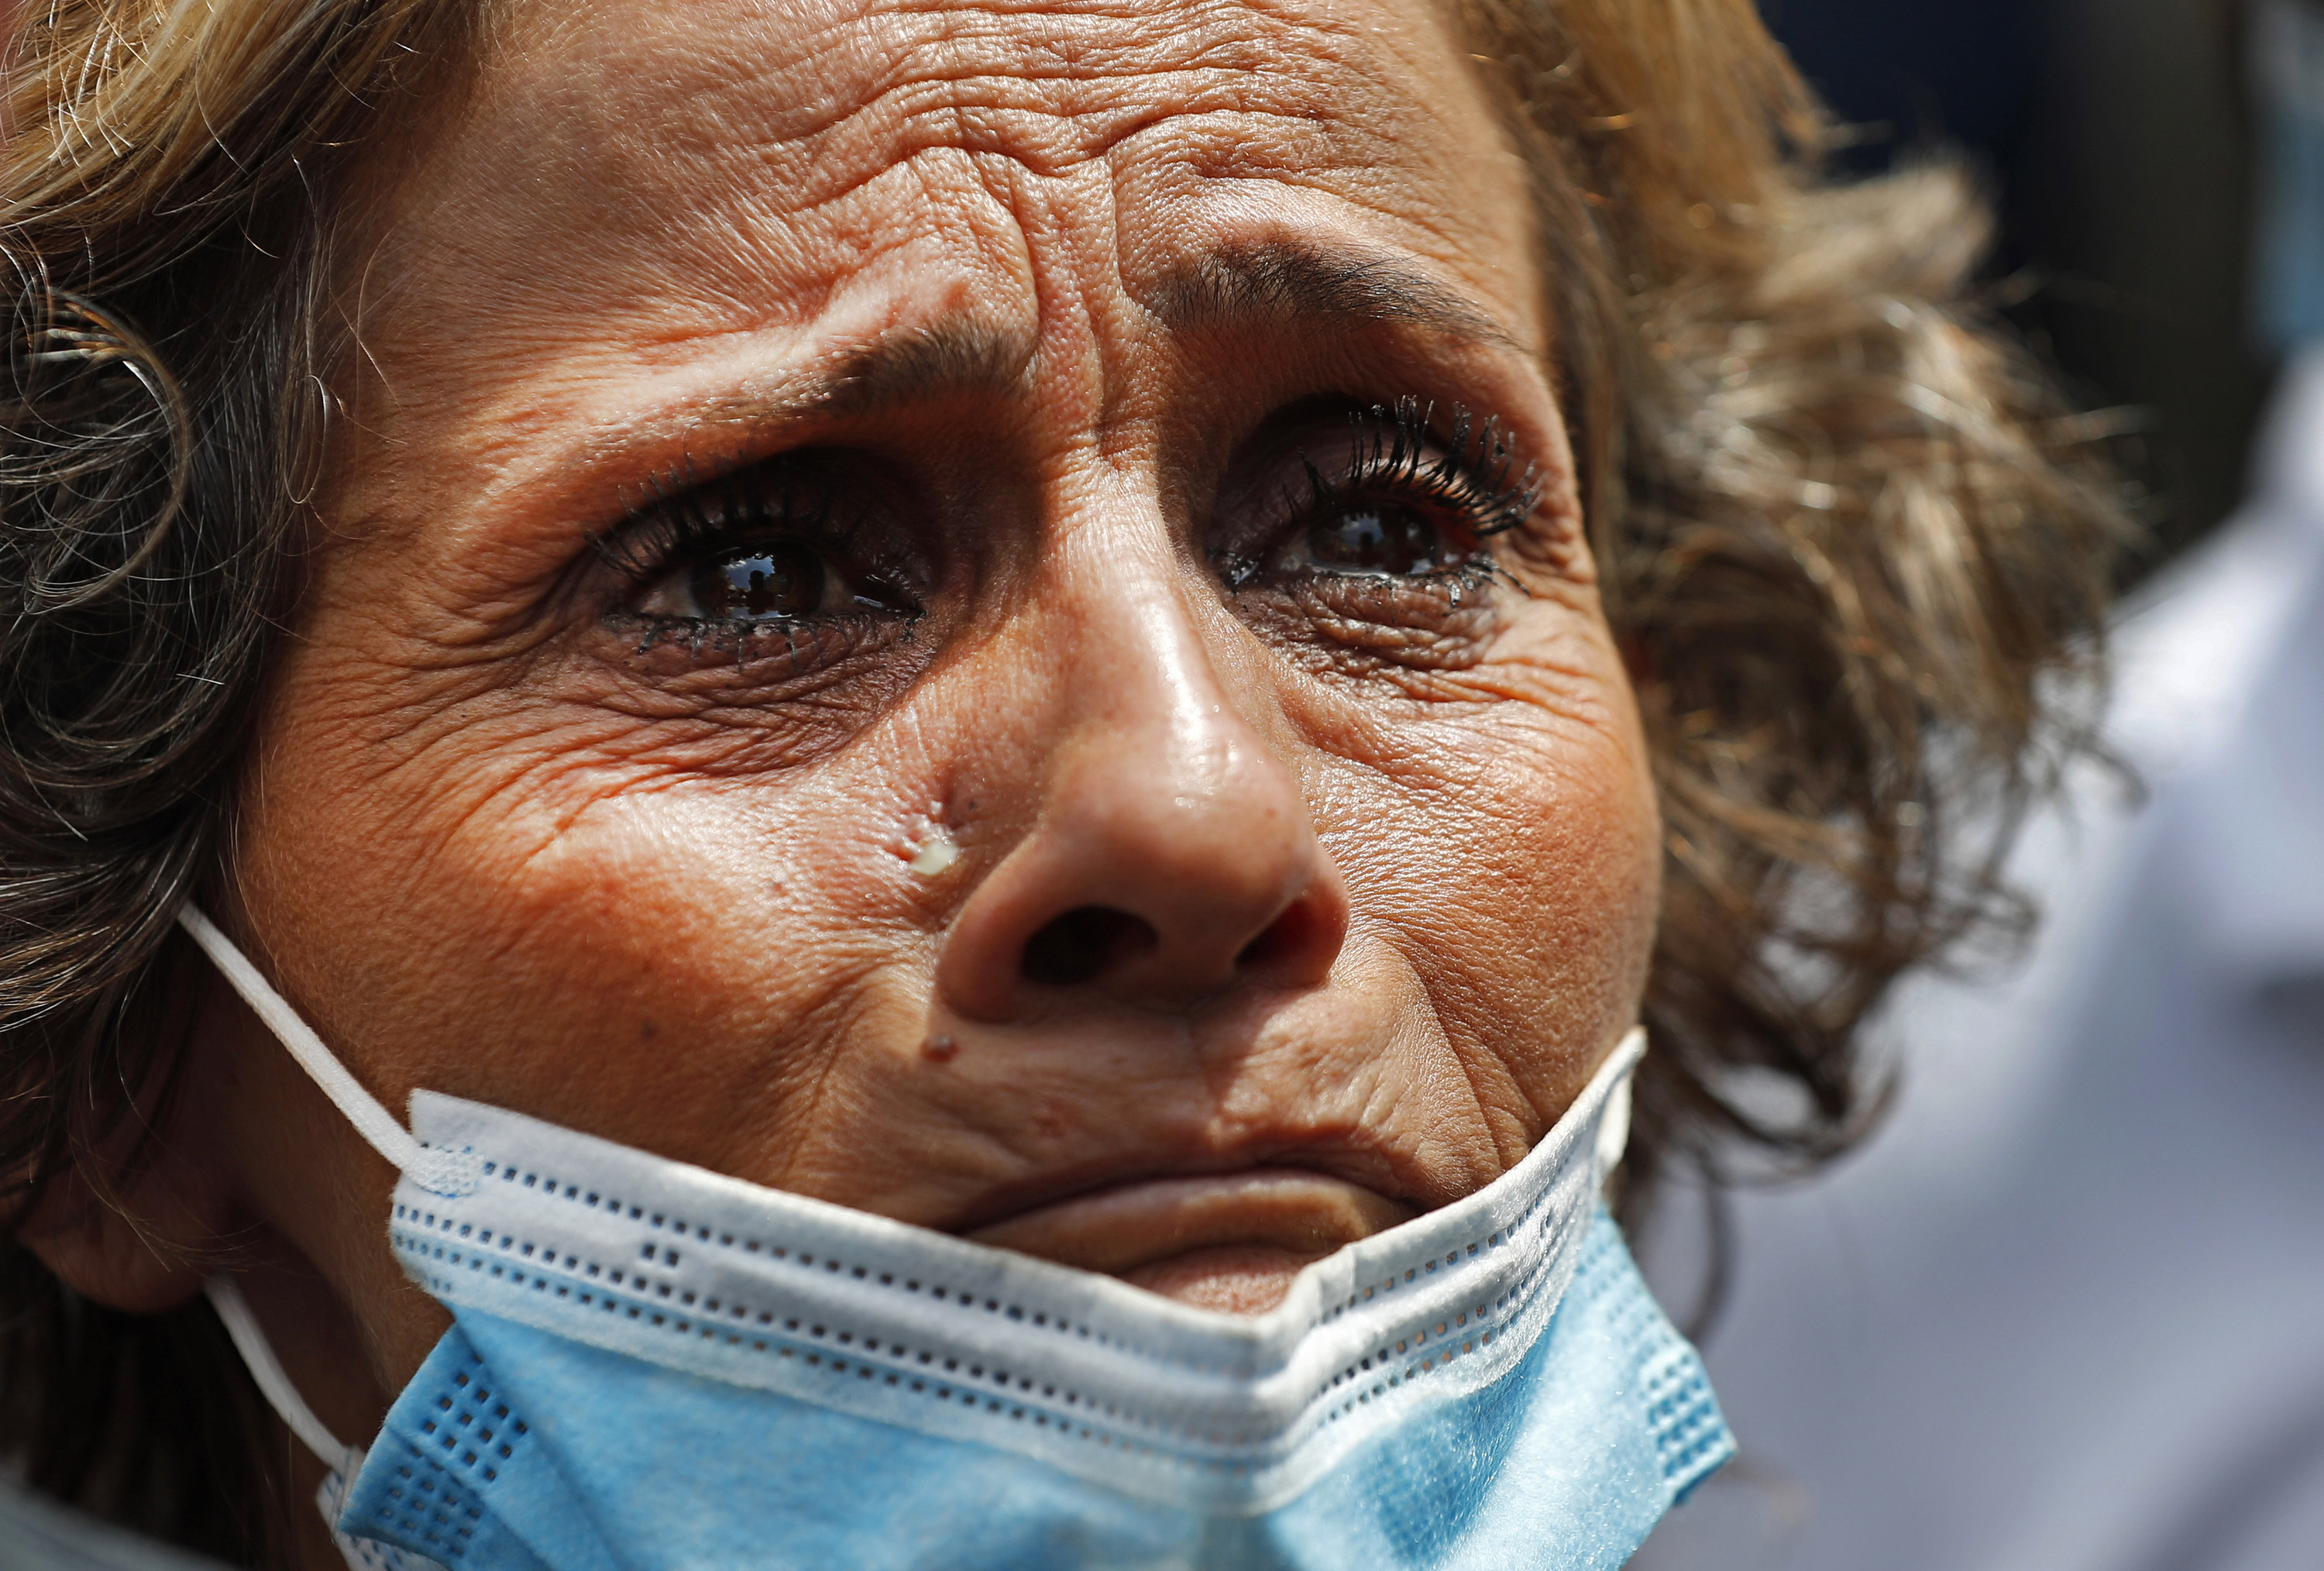 A crying woman wears a disposable blue mask pulled down to her chin